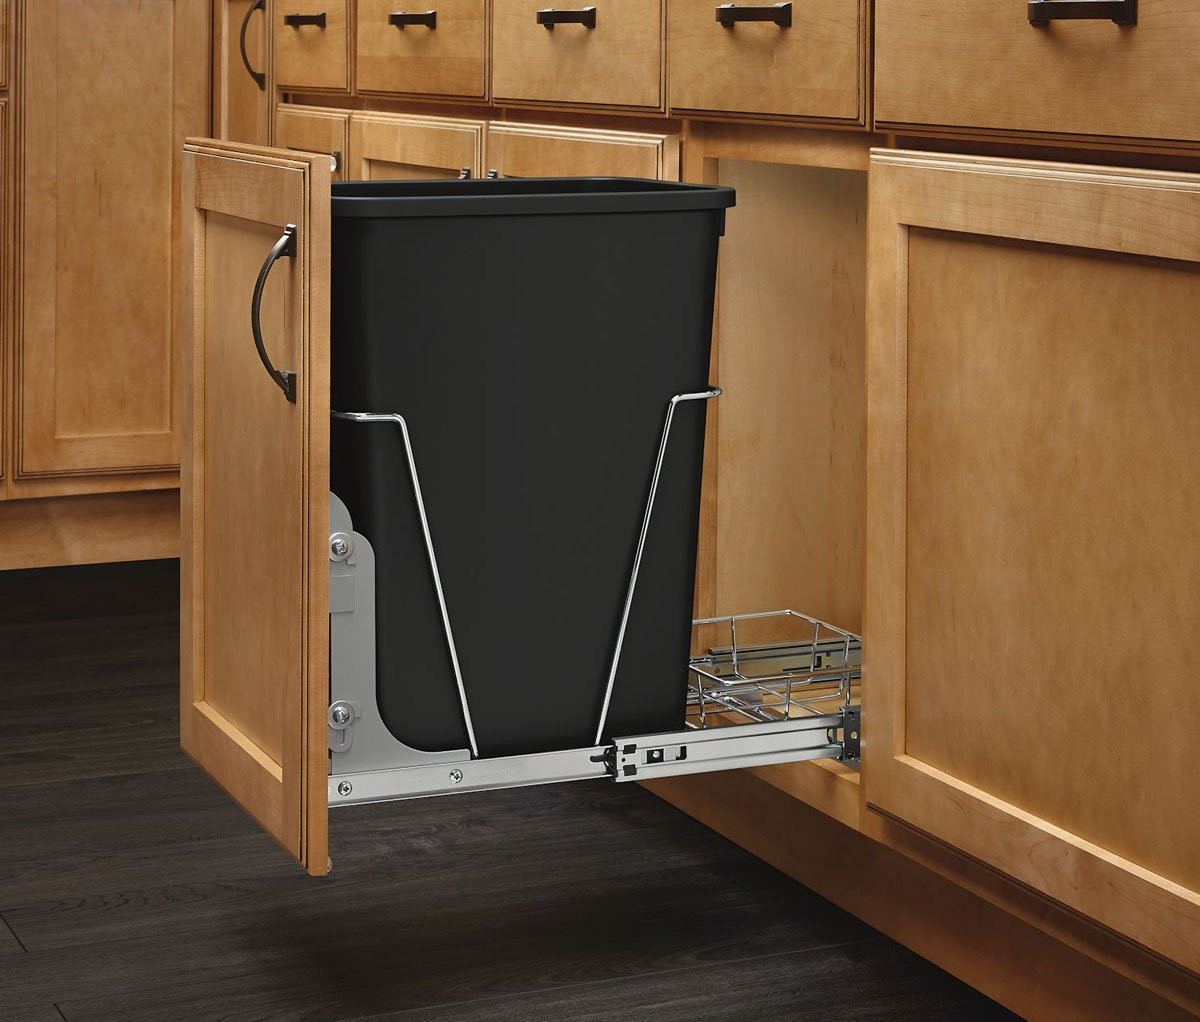 how to fix cabinet with ball bearings are out